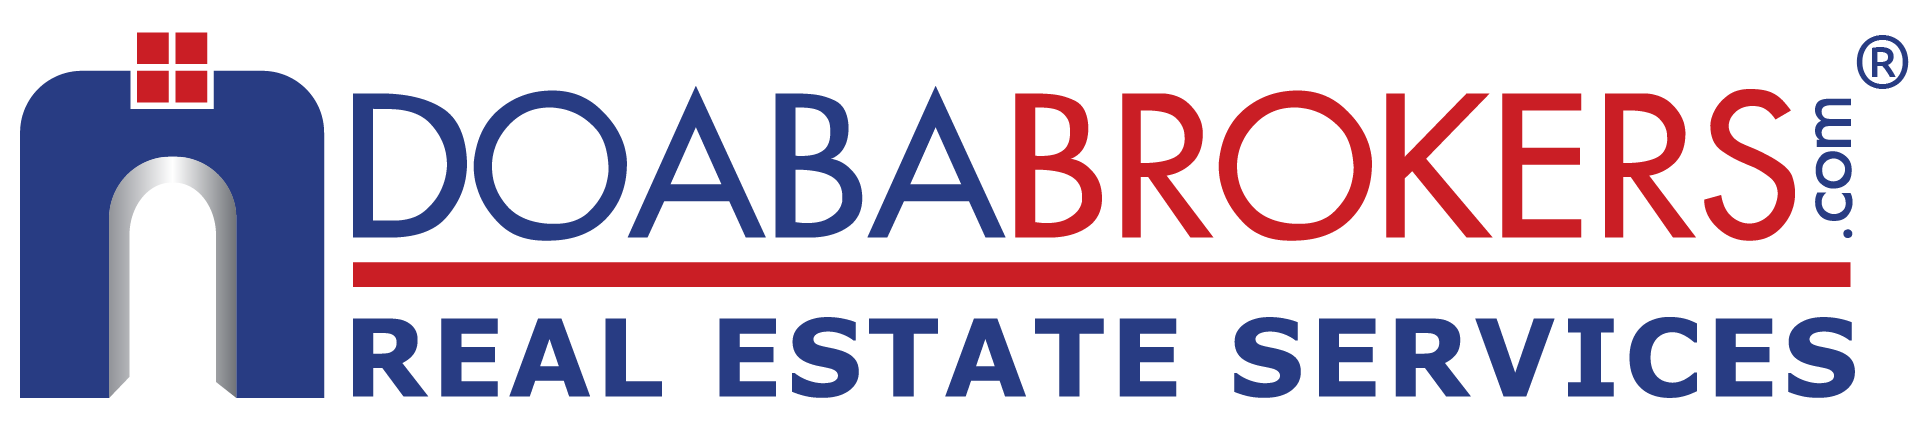 Doaba Brokers, LLC.